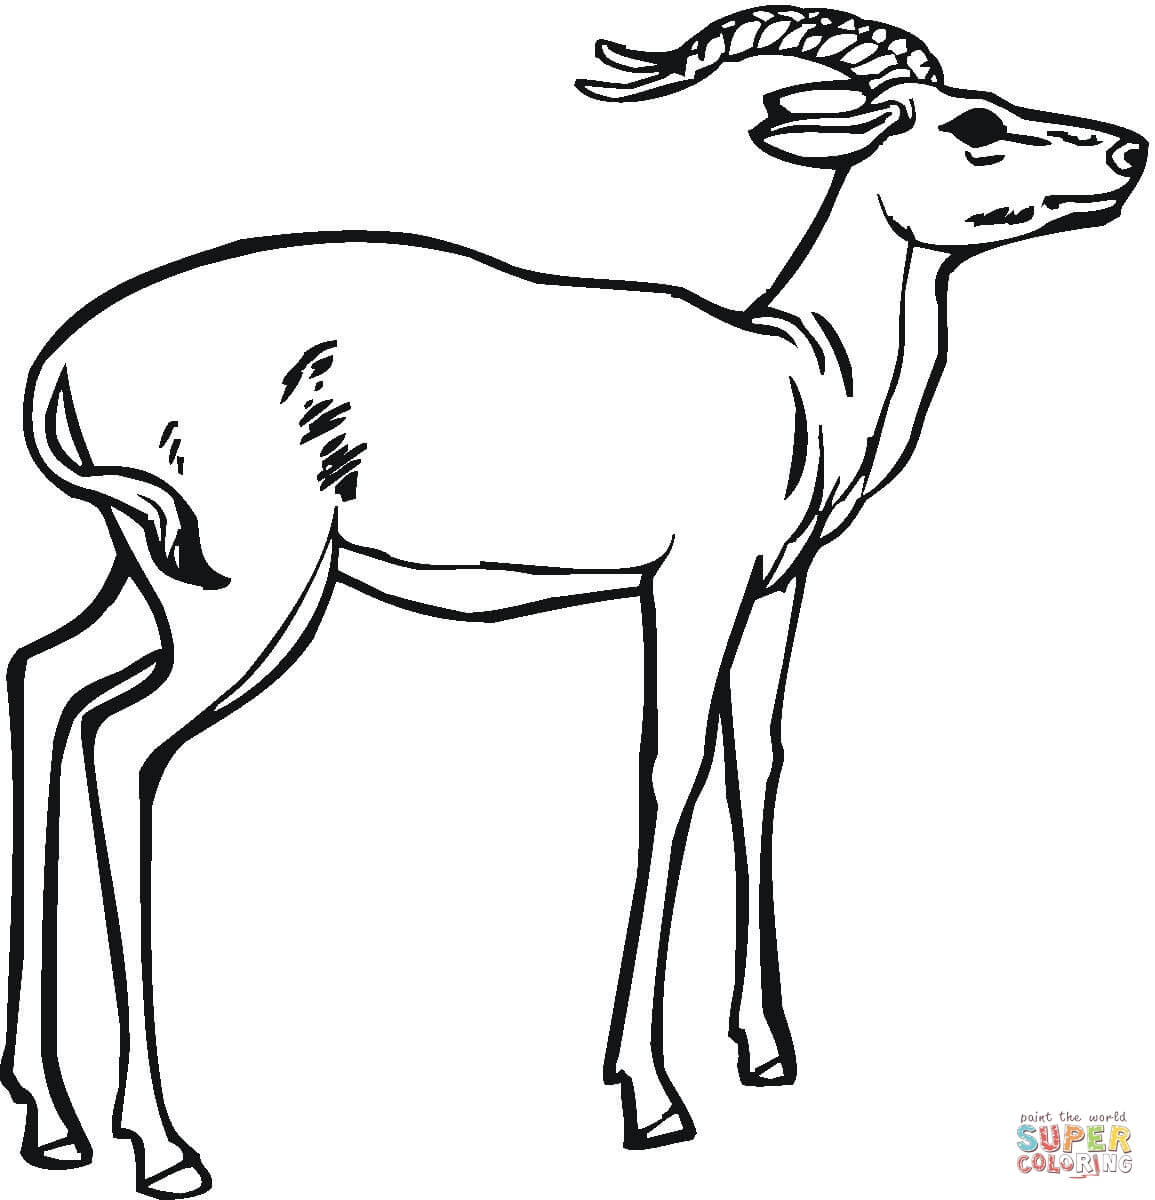 1155x1200 Impala Coloring Page Free Printable Coloring Pages